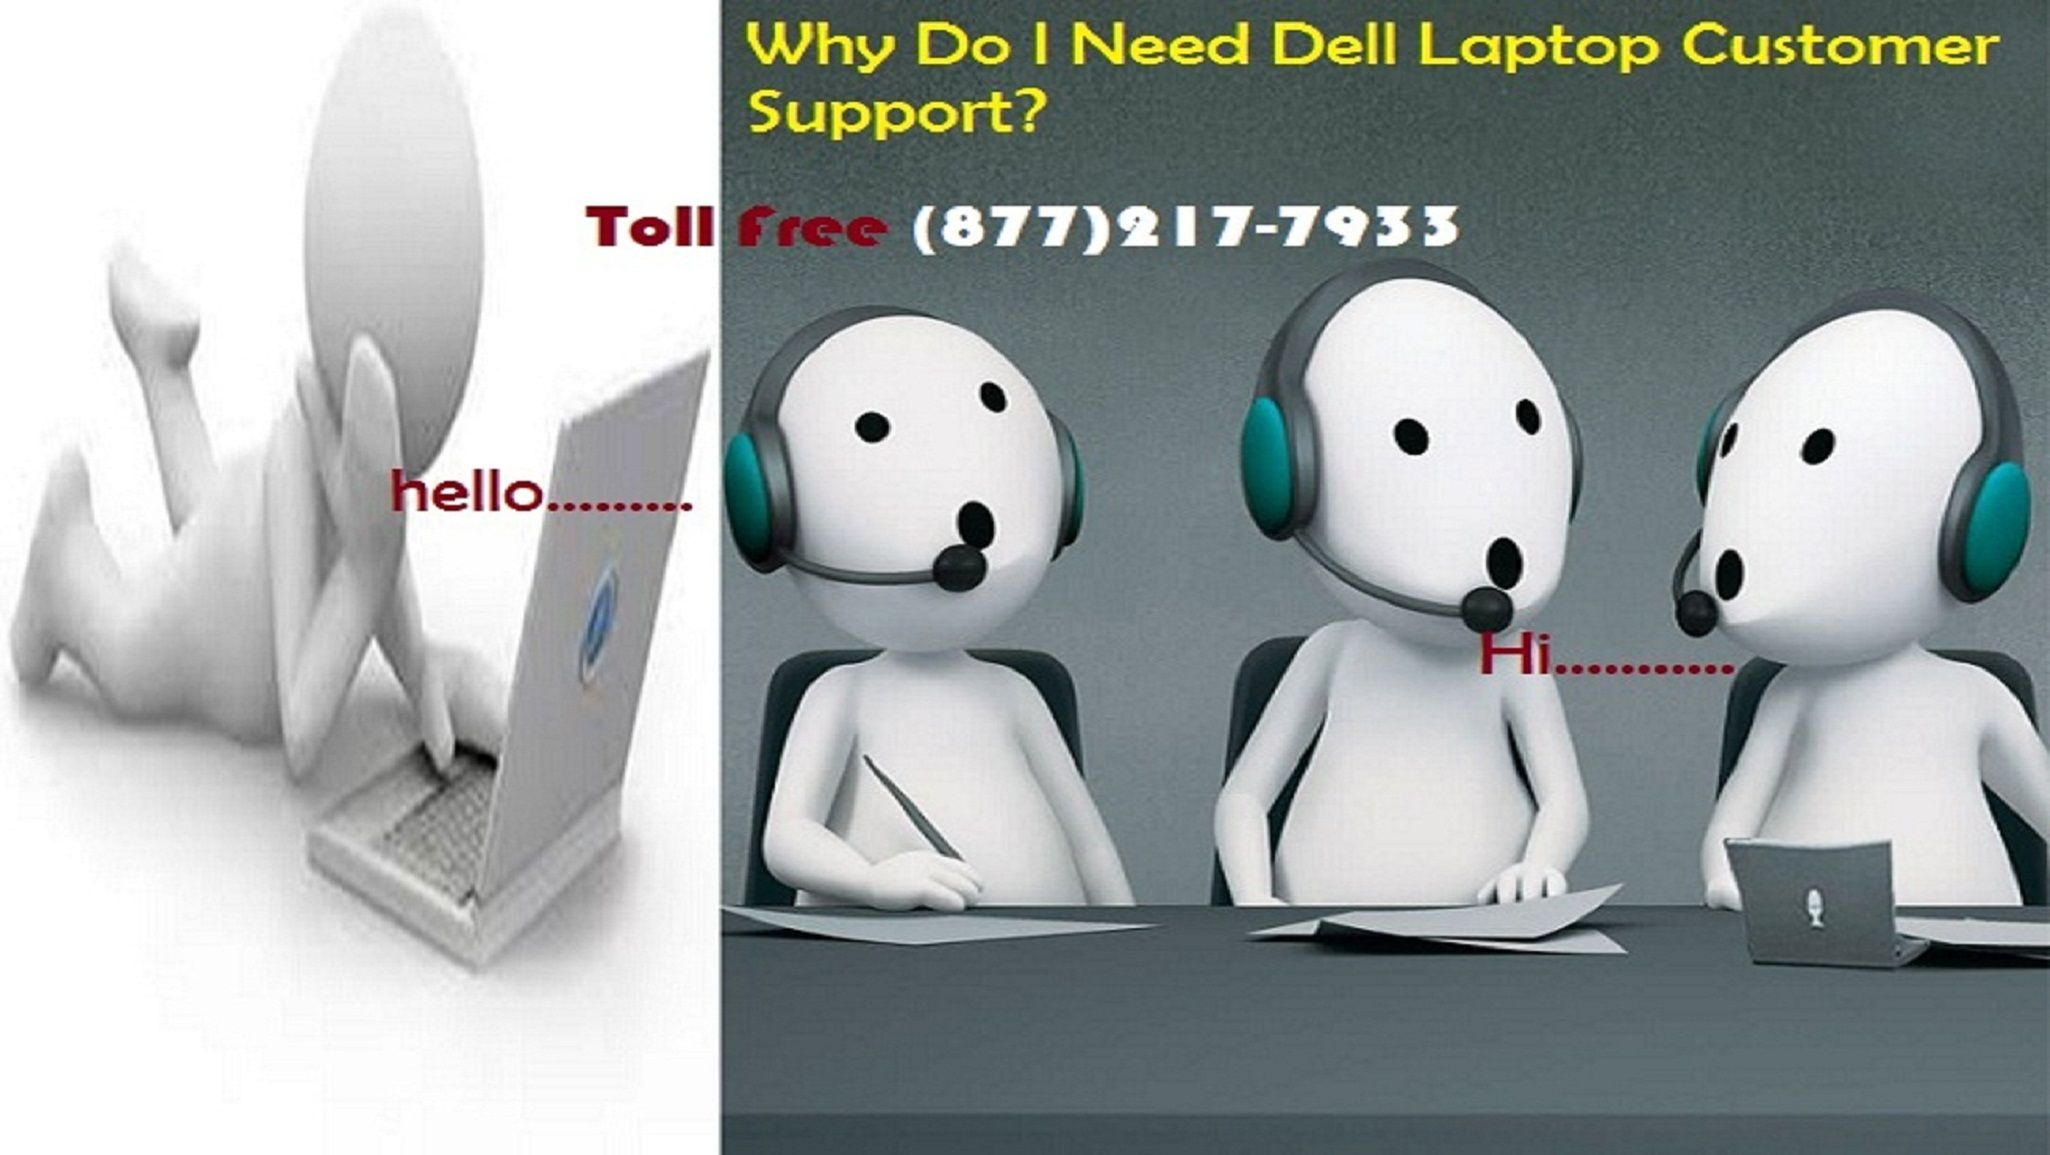 1-877-217-7933 Dell customer support number   Dell customer support is widely used for Dell support like Laptop, Printer, Scanner, Tablets and PC in all over world on toll free 1-877-217-7933. Fill free and call us to known for their advance technologies.